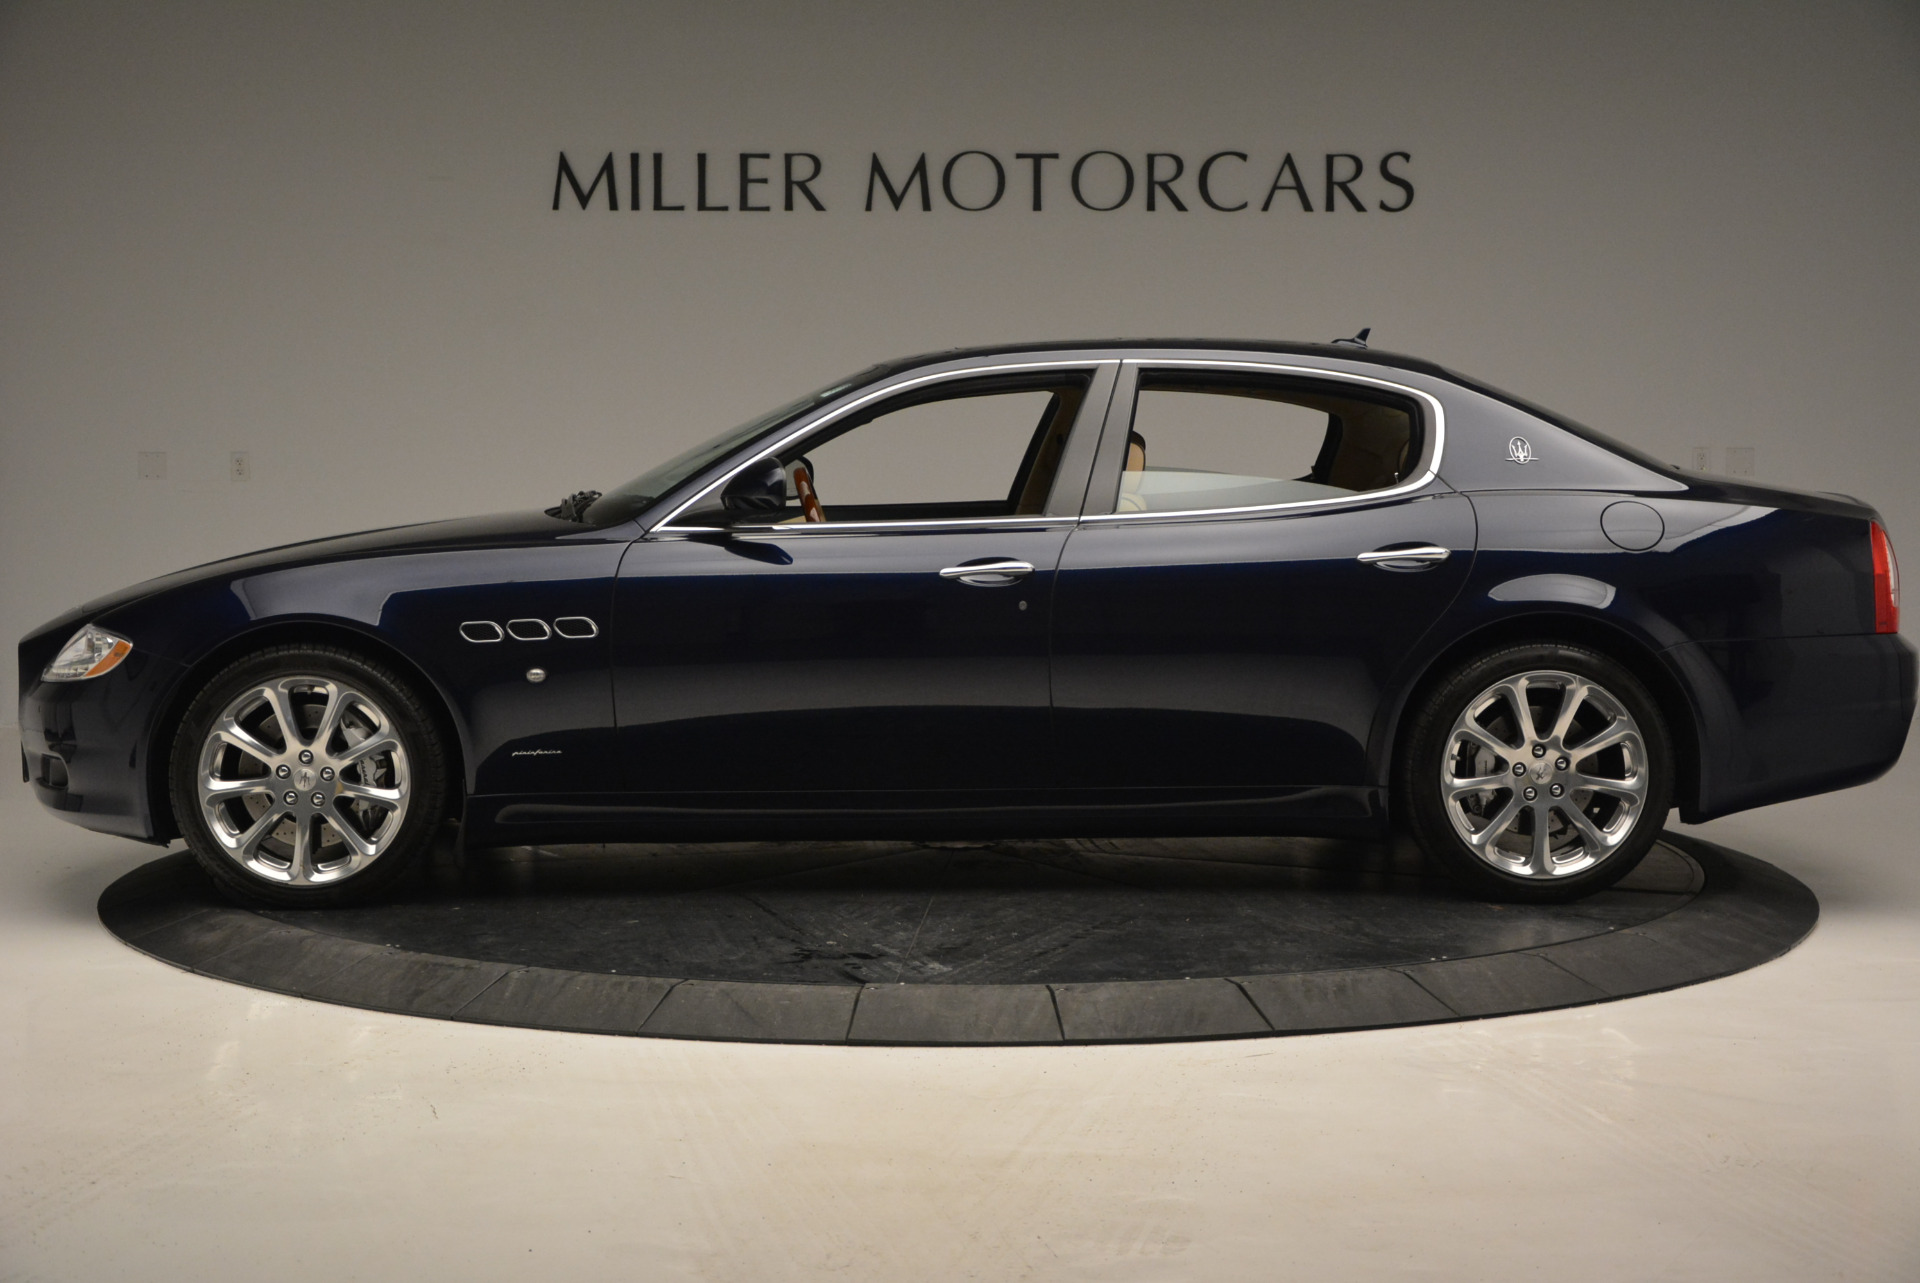 Used 2010 Maserati Quattroporte S For Sale In Westport, CT 795_p3